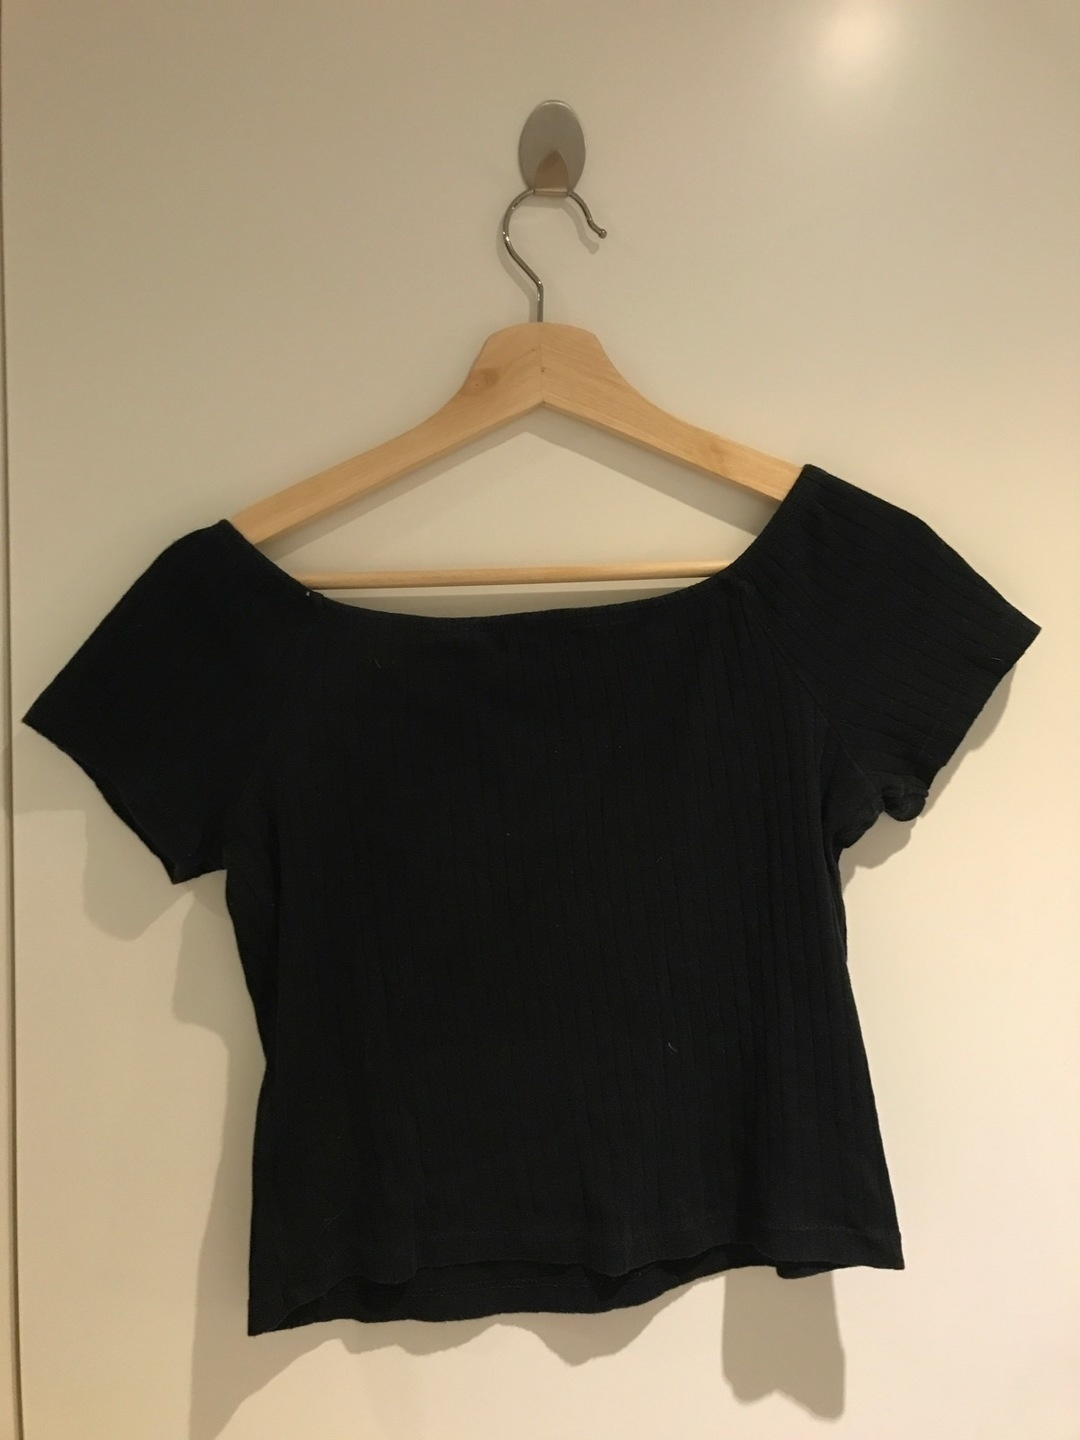 Women's tops & t-shirts - URBAN OUTFITTERS photo 3